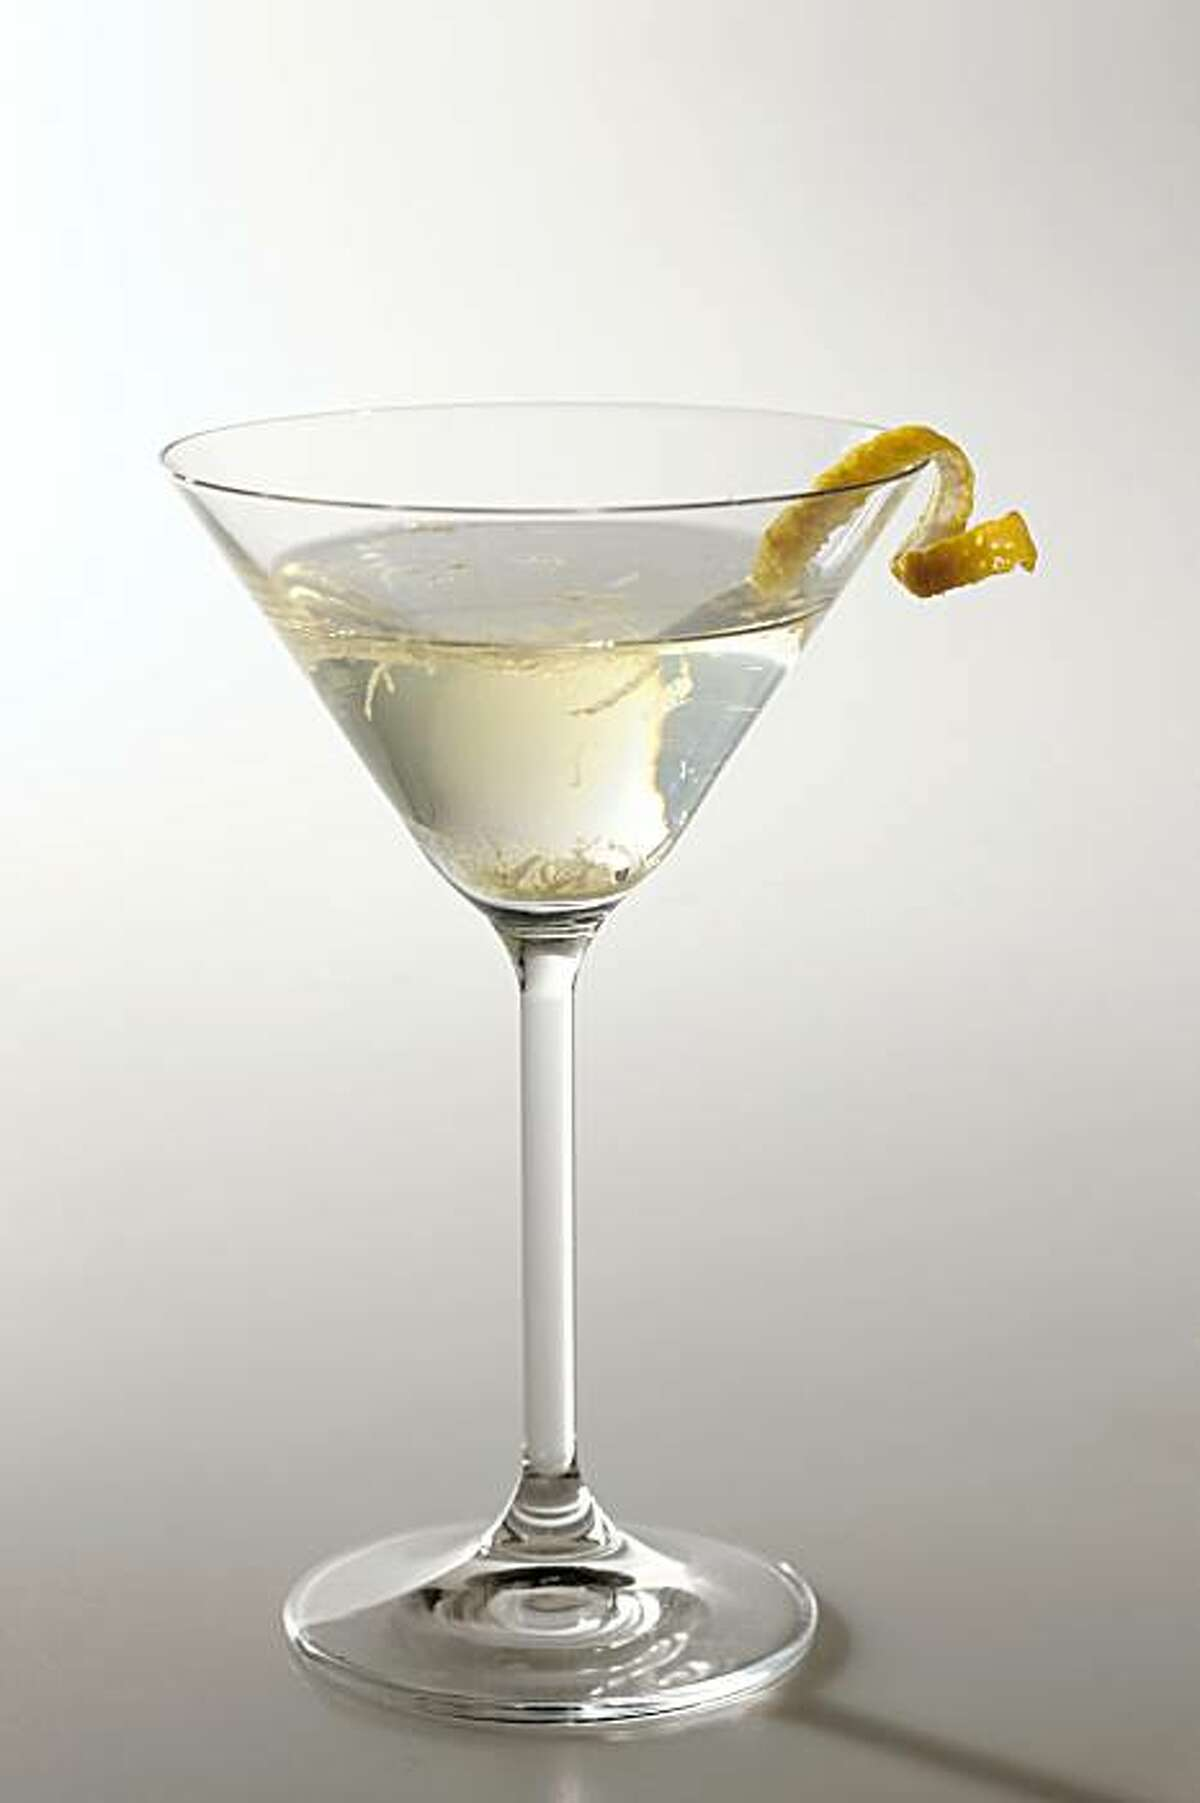 Quince Martini in San Francisco, Calif., on October 28, 2009. Drink styled by Rose Amoroso.